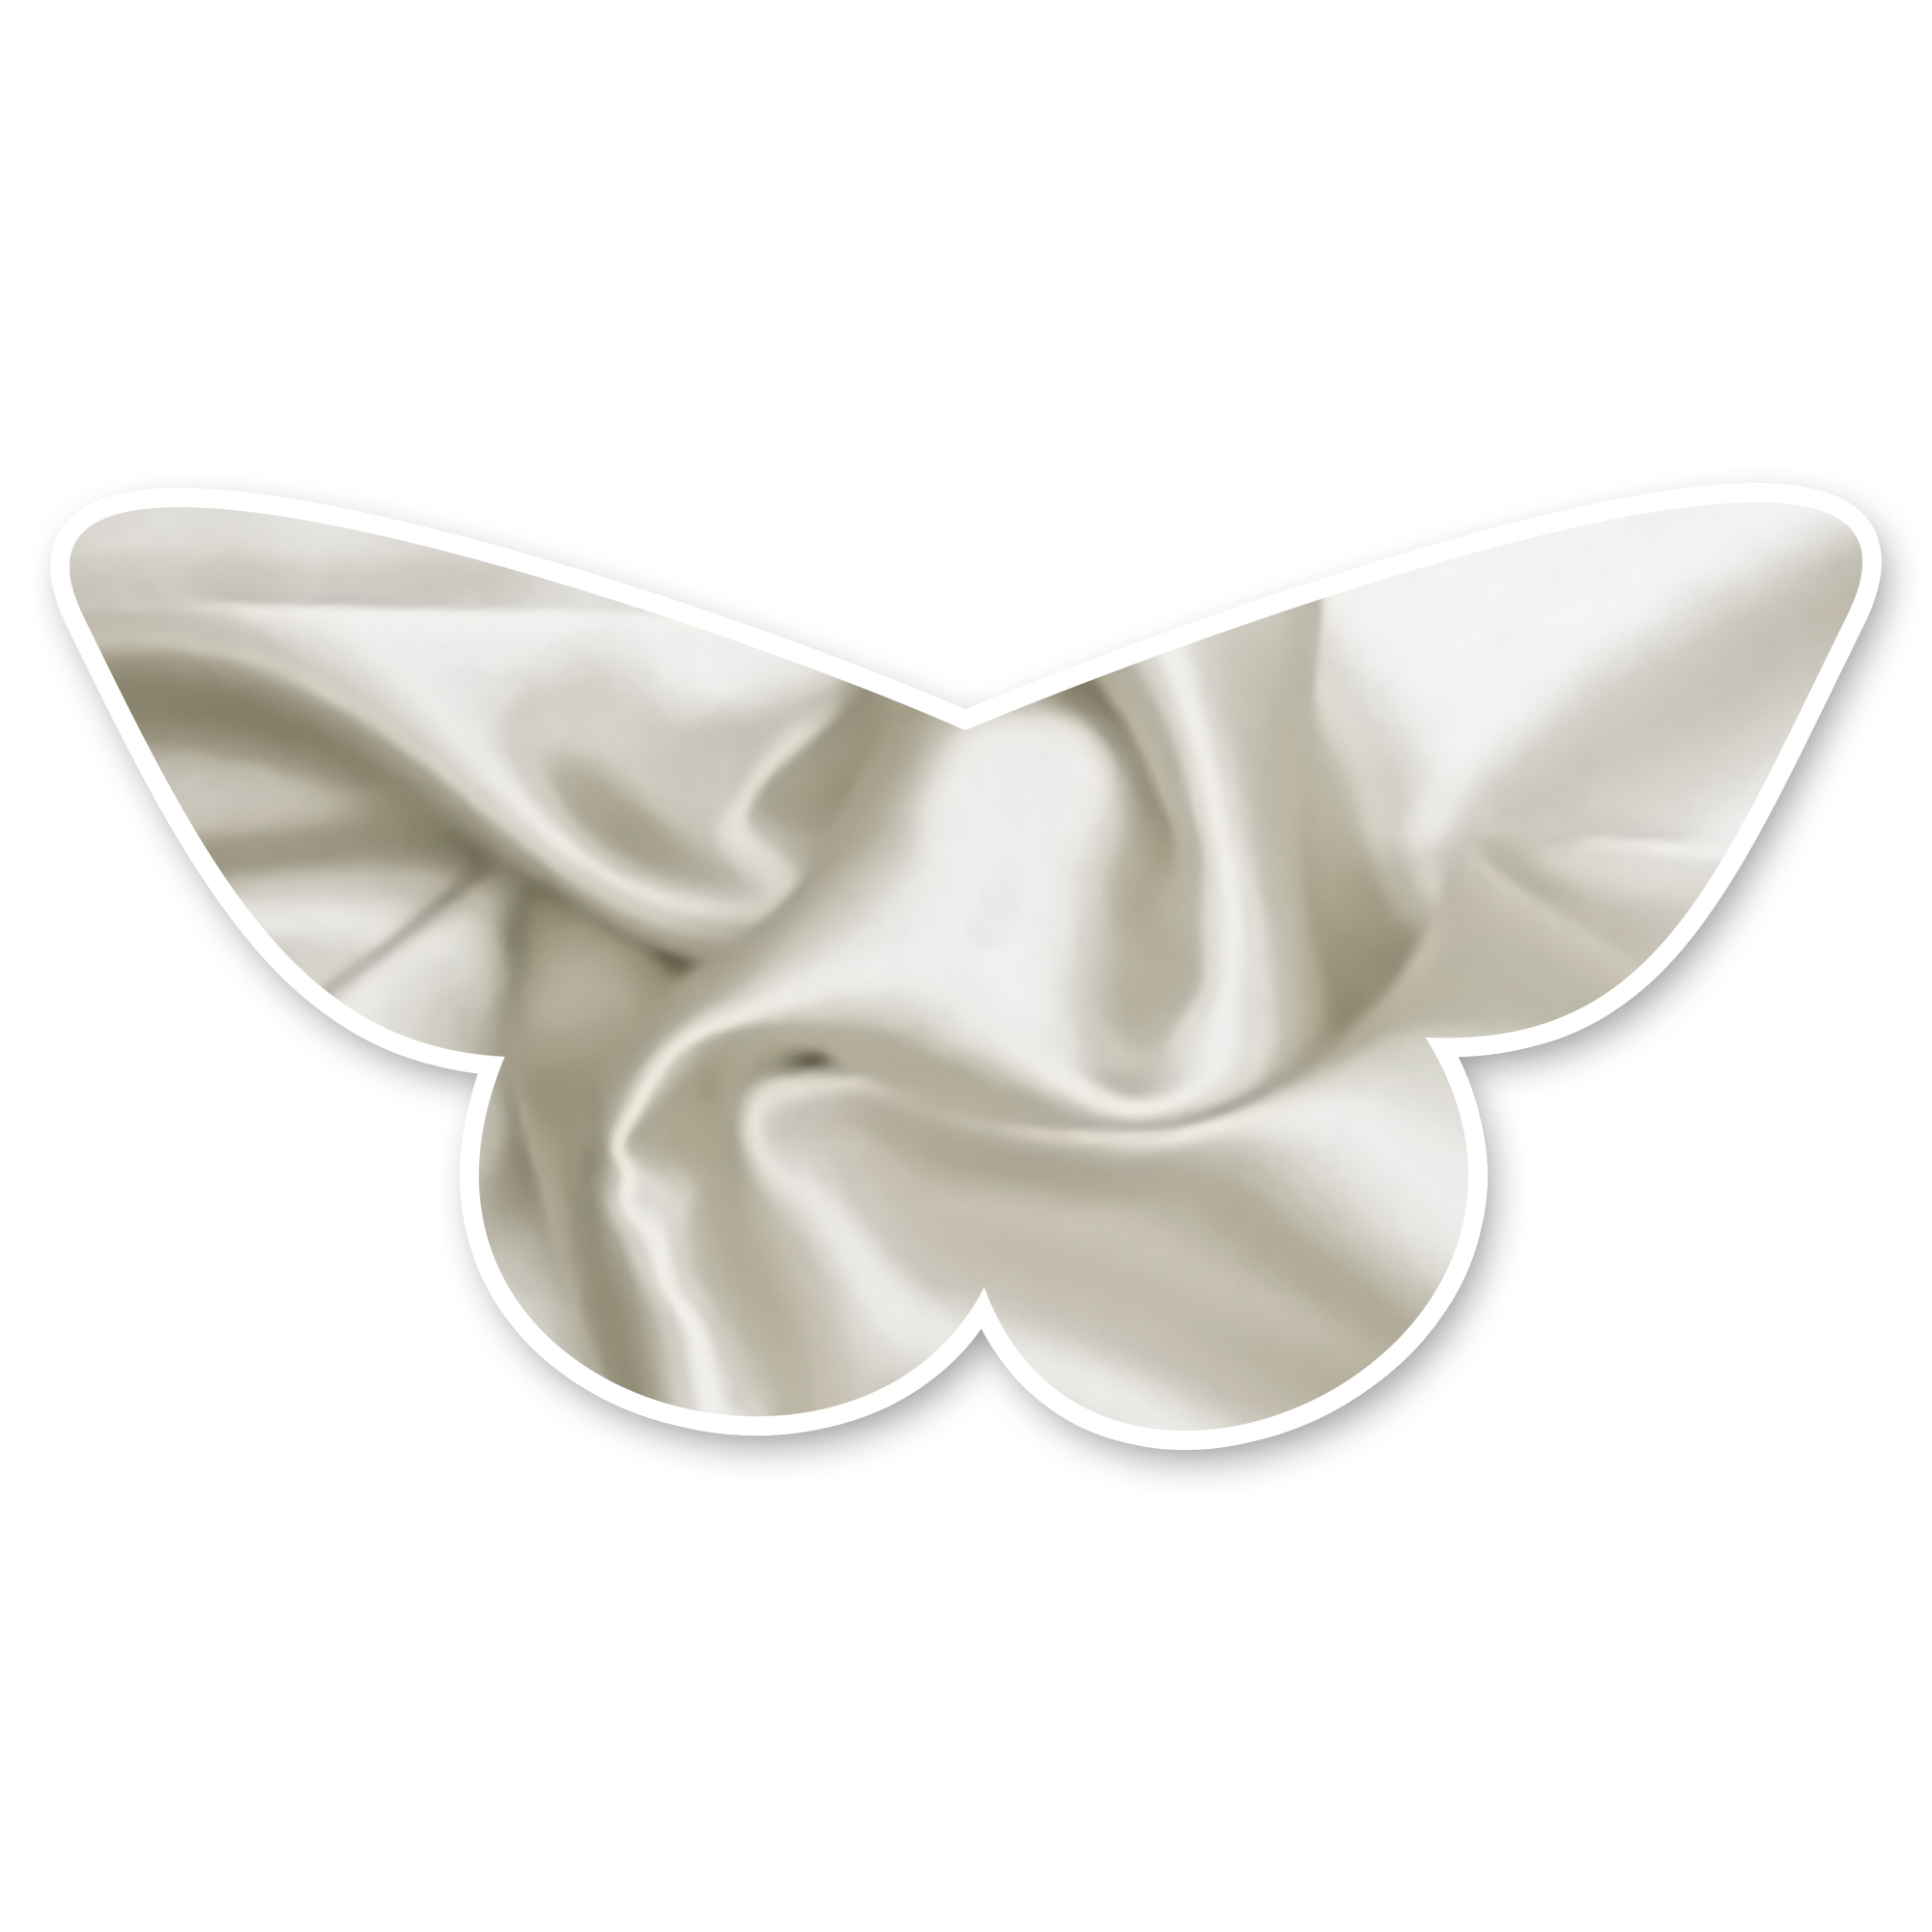 2-x-58-WEDDING-SATIN-SASH-BELT-BOW-TIE-HEADBAND-SCARF